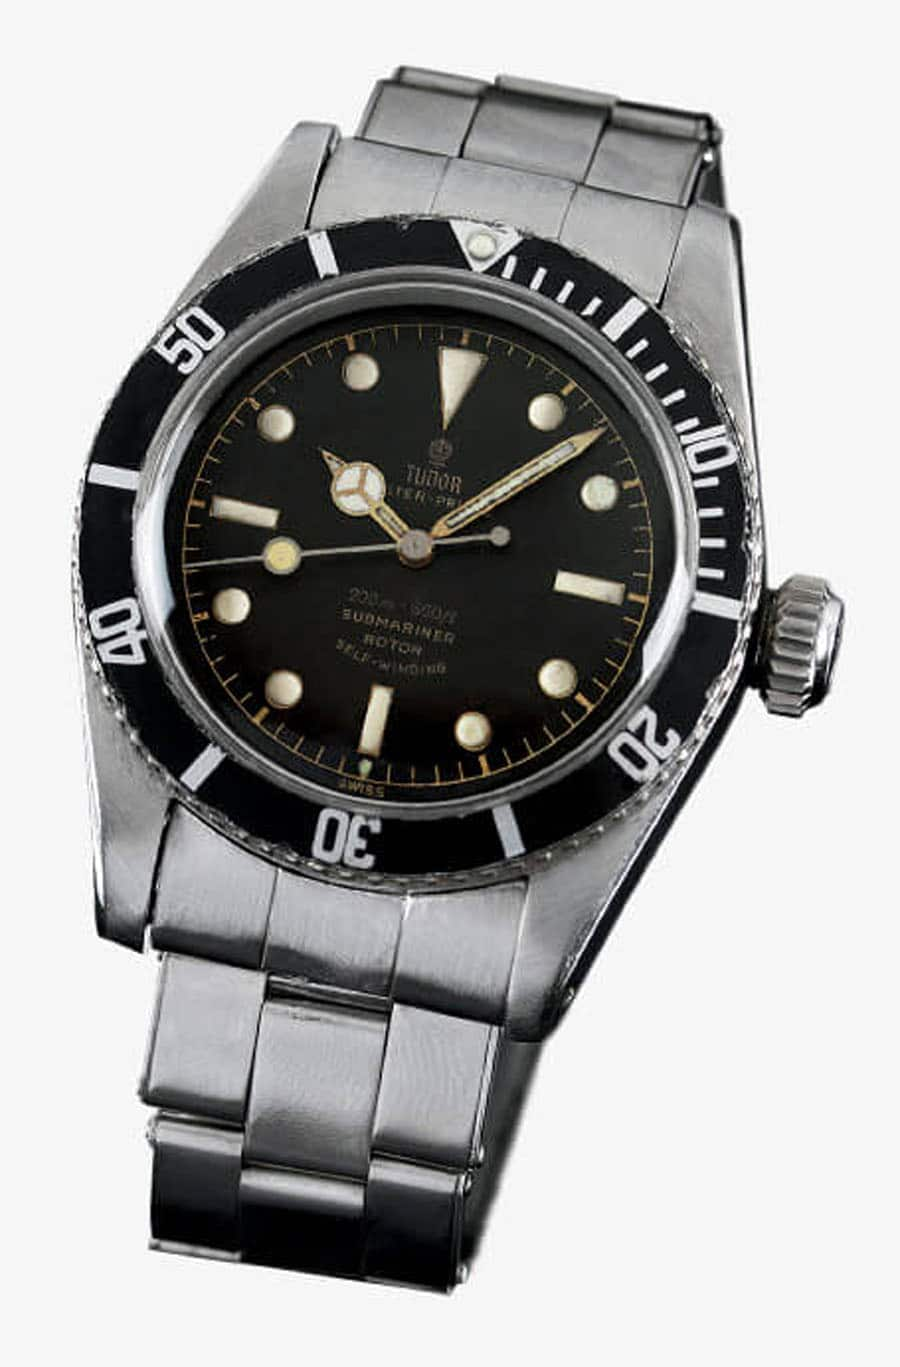 Tudor: Oyster Prince Submariner Big Crown Referenz 7924 von 1958, Foto Tudor